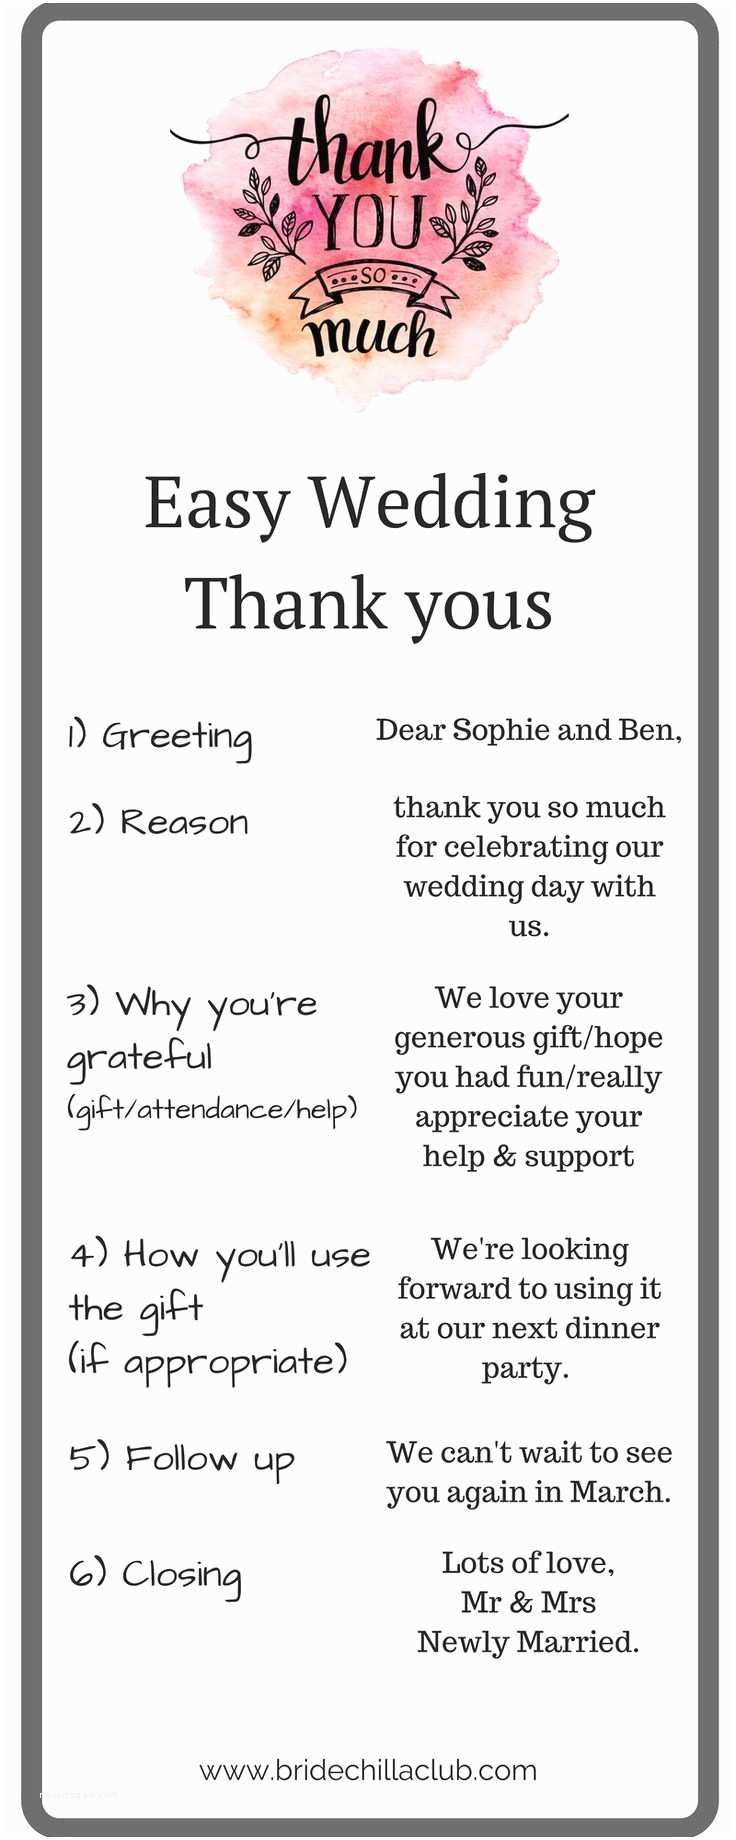 Quick Wedding Invitations Pin It for Later to Make Your Wedding Thank Yous Quick and